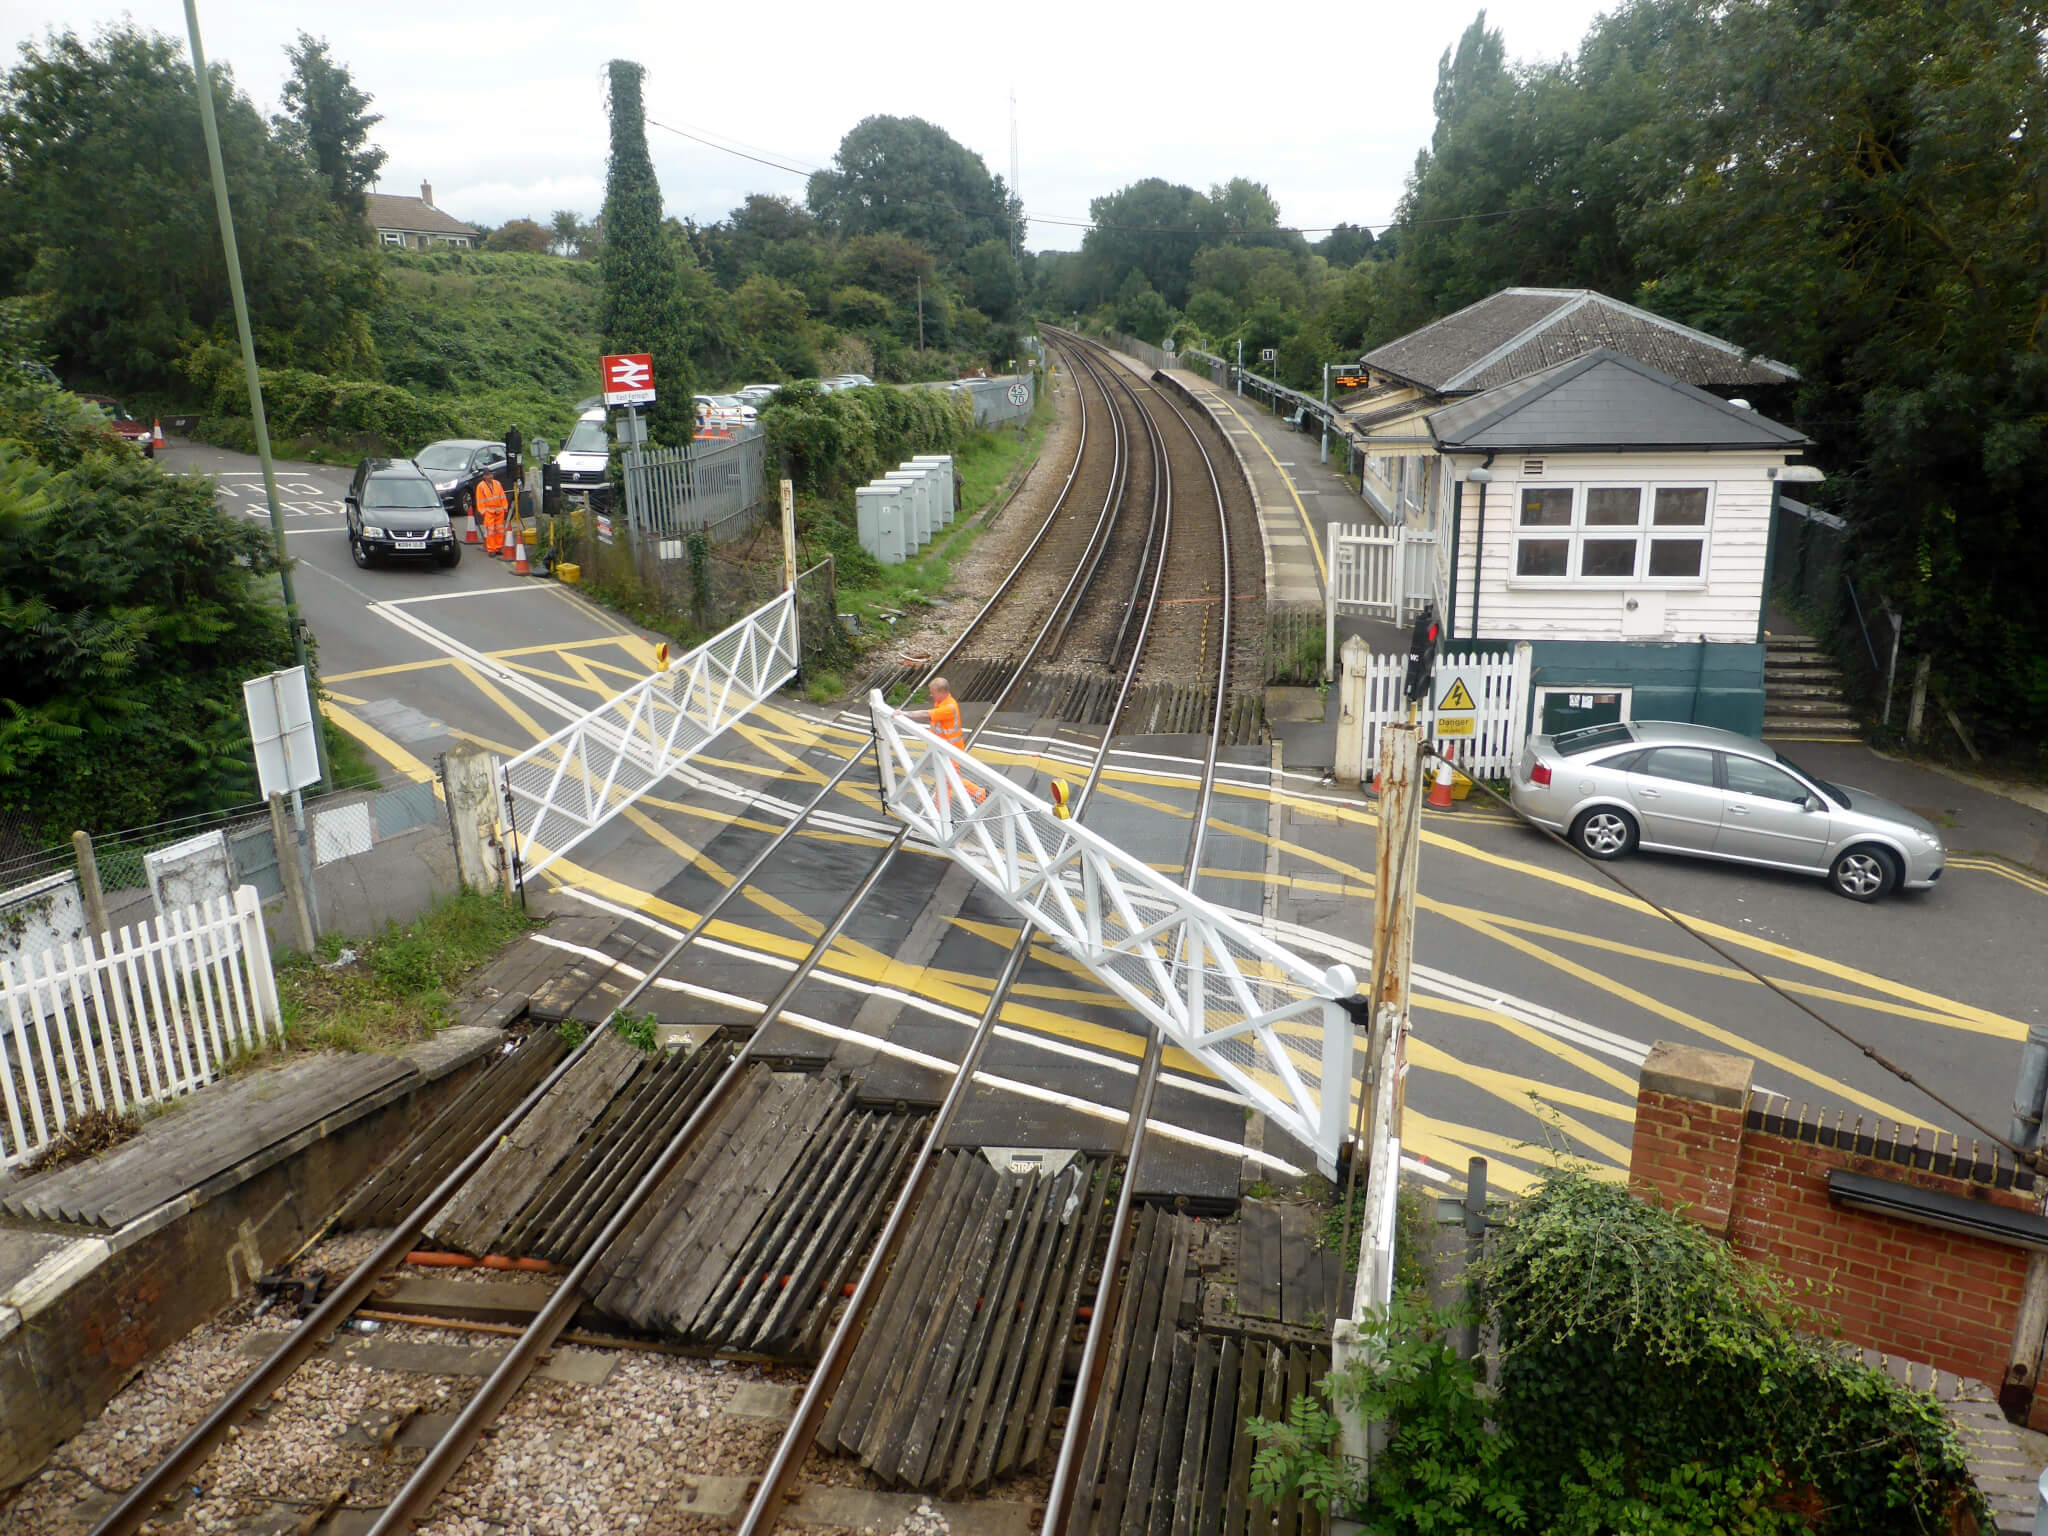 The UK still has manually-operated level crossings.